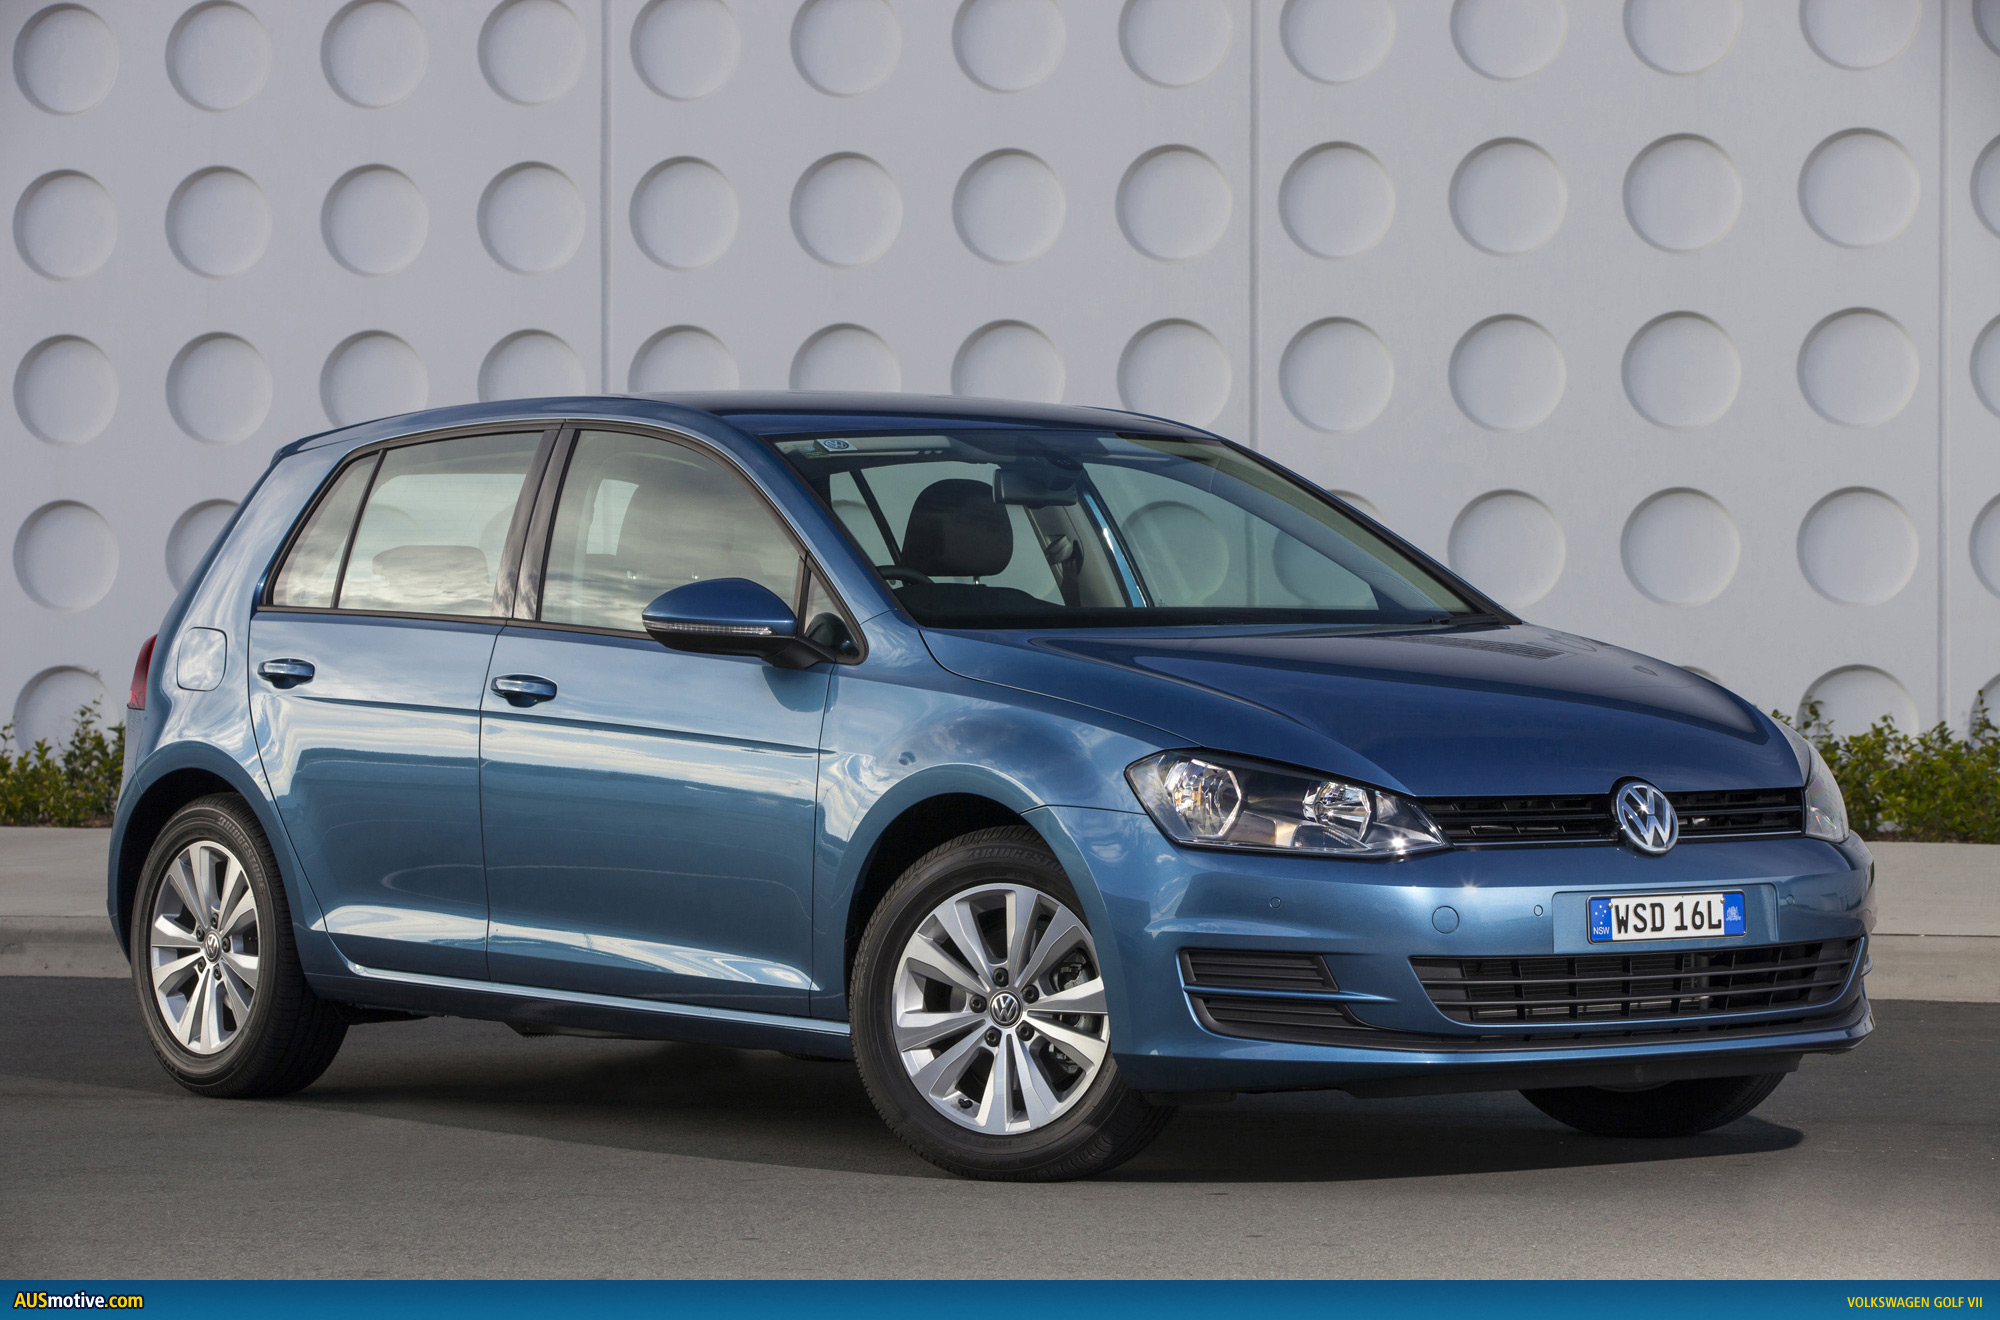 ausmotive » volkswagen golf vii – australian pricing & specs